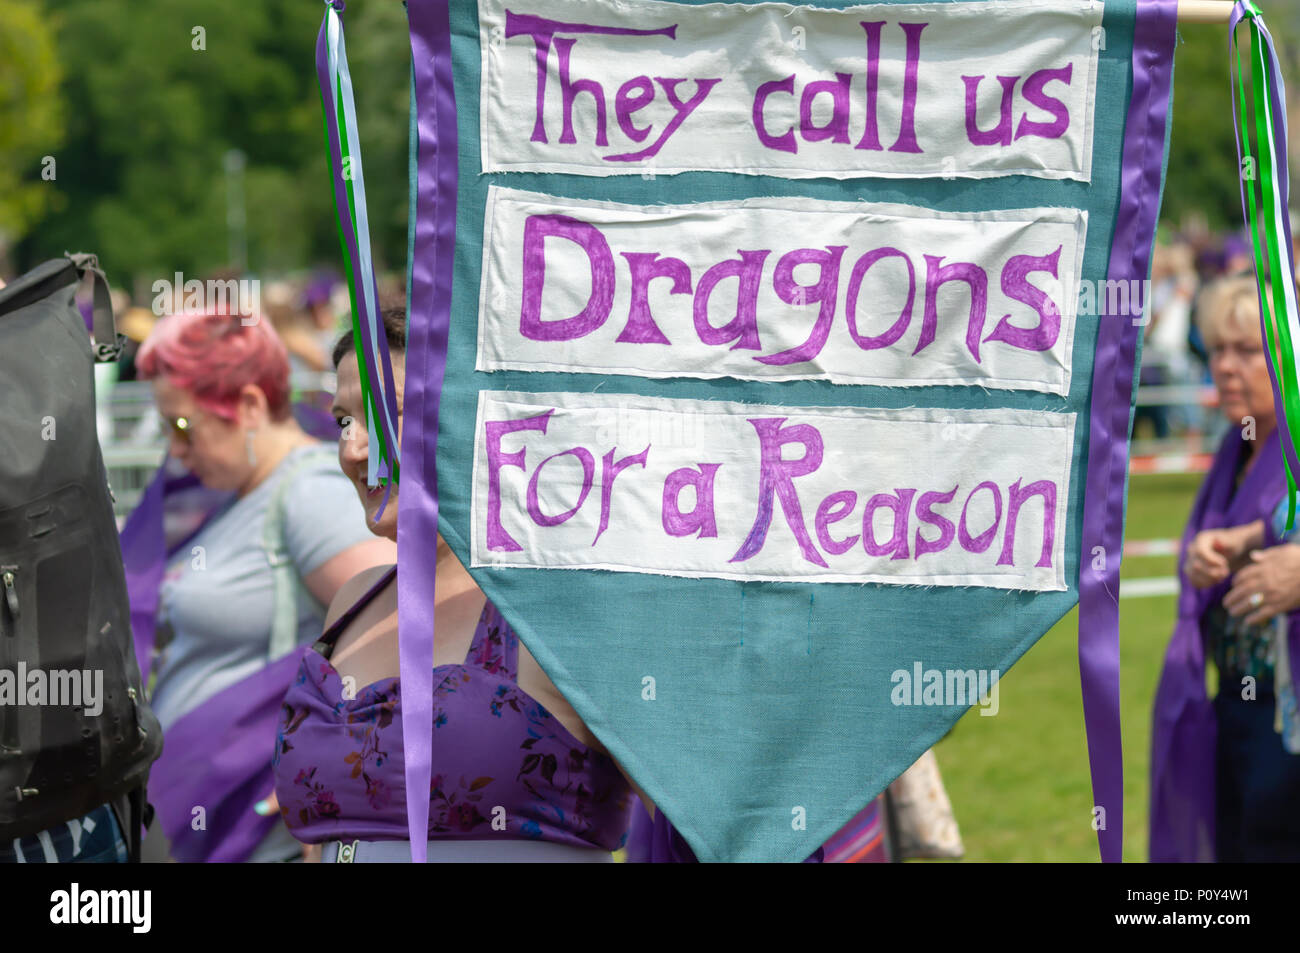 Green Dragons Banners Bmt Banners